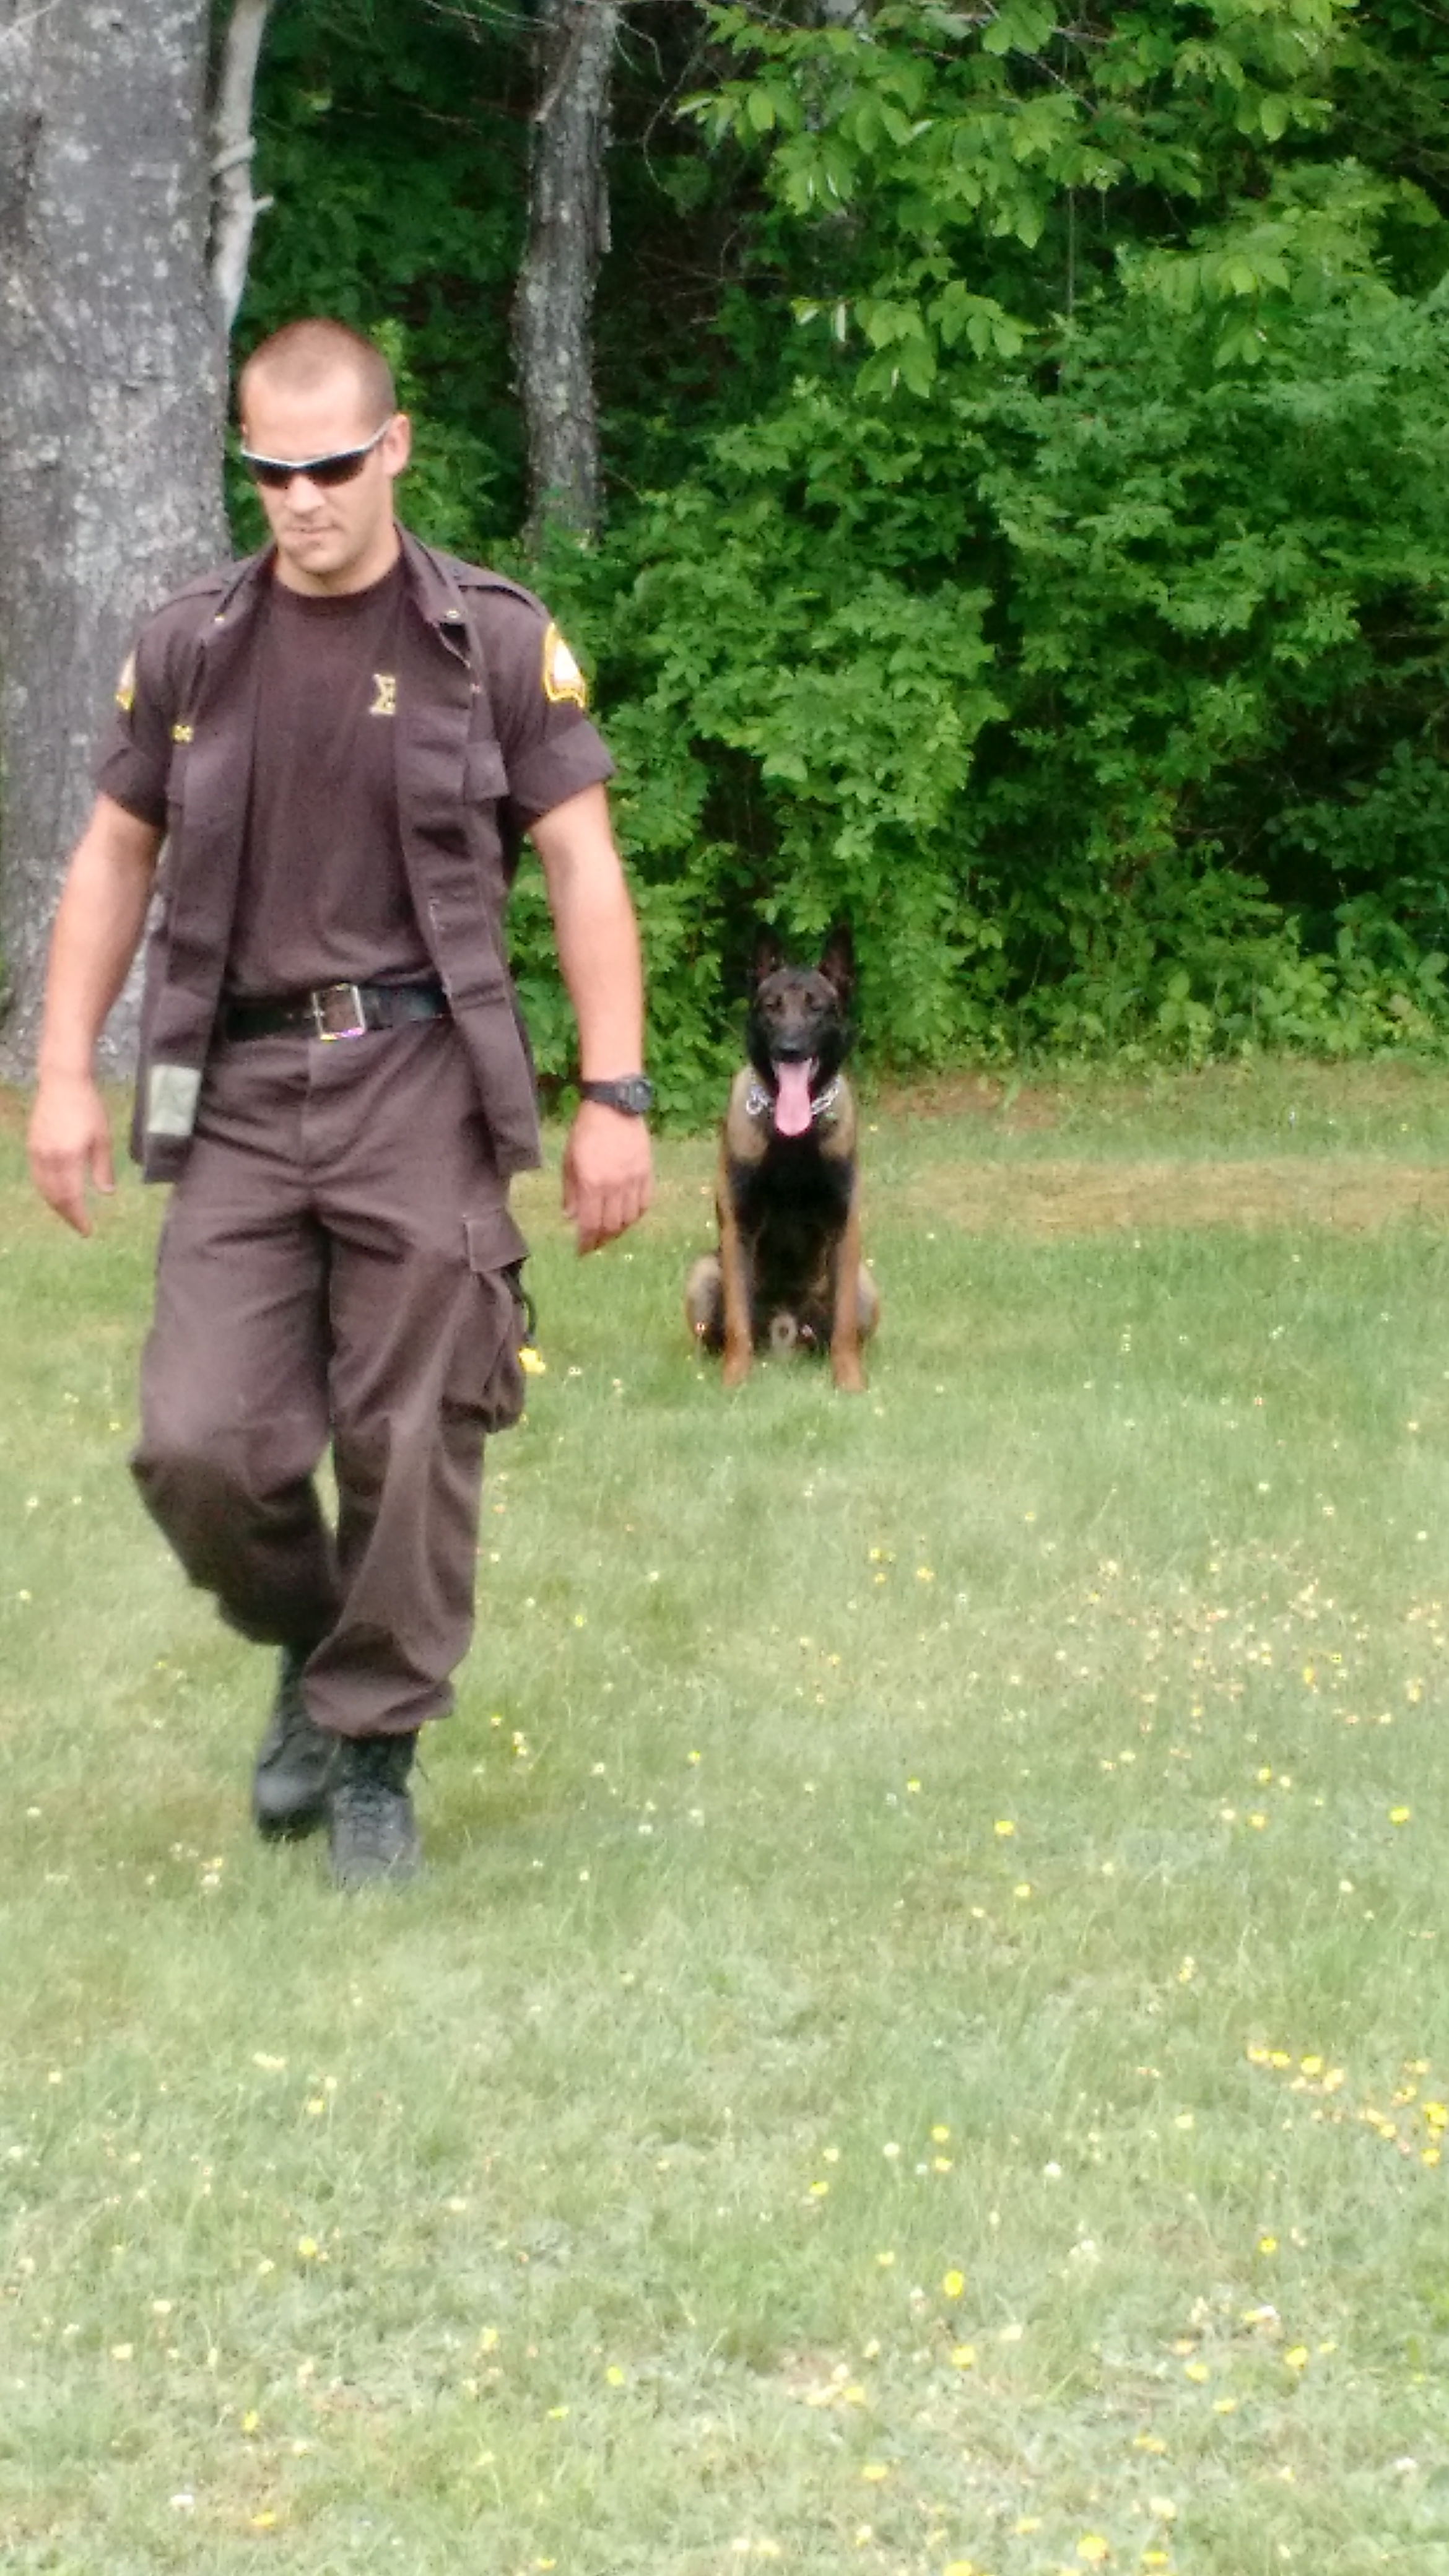 Cpl David Cole and K9 Kojo from Somerset SO